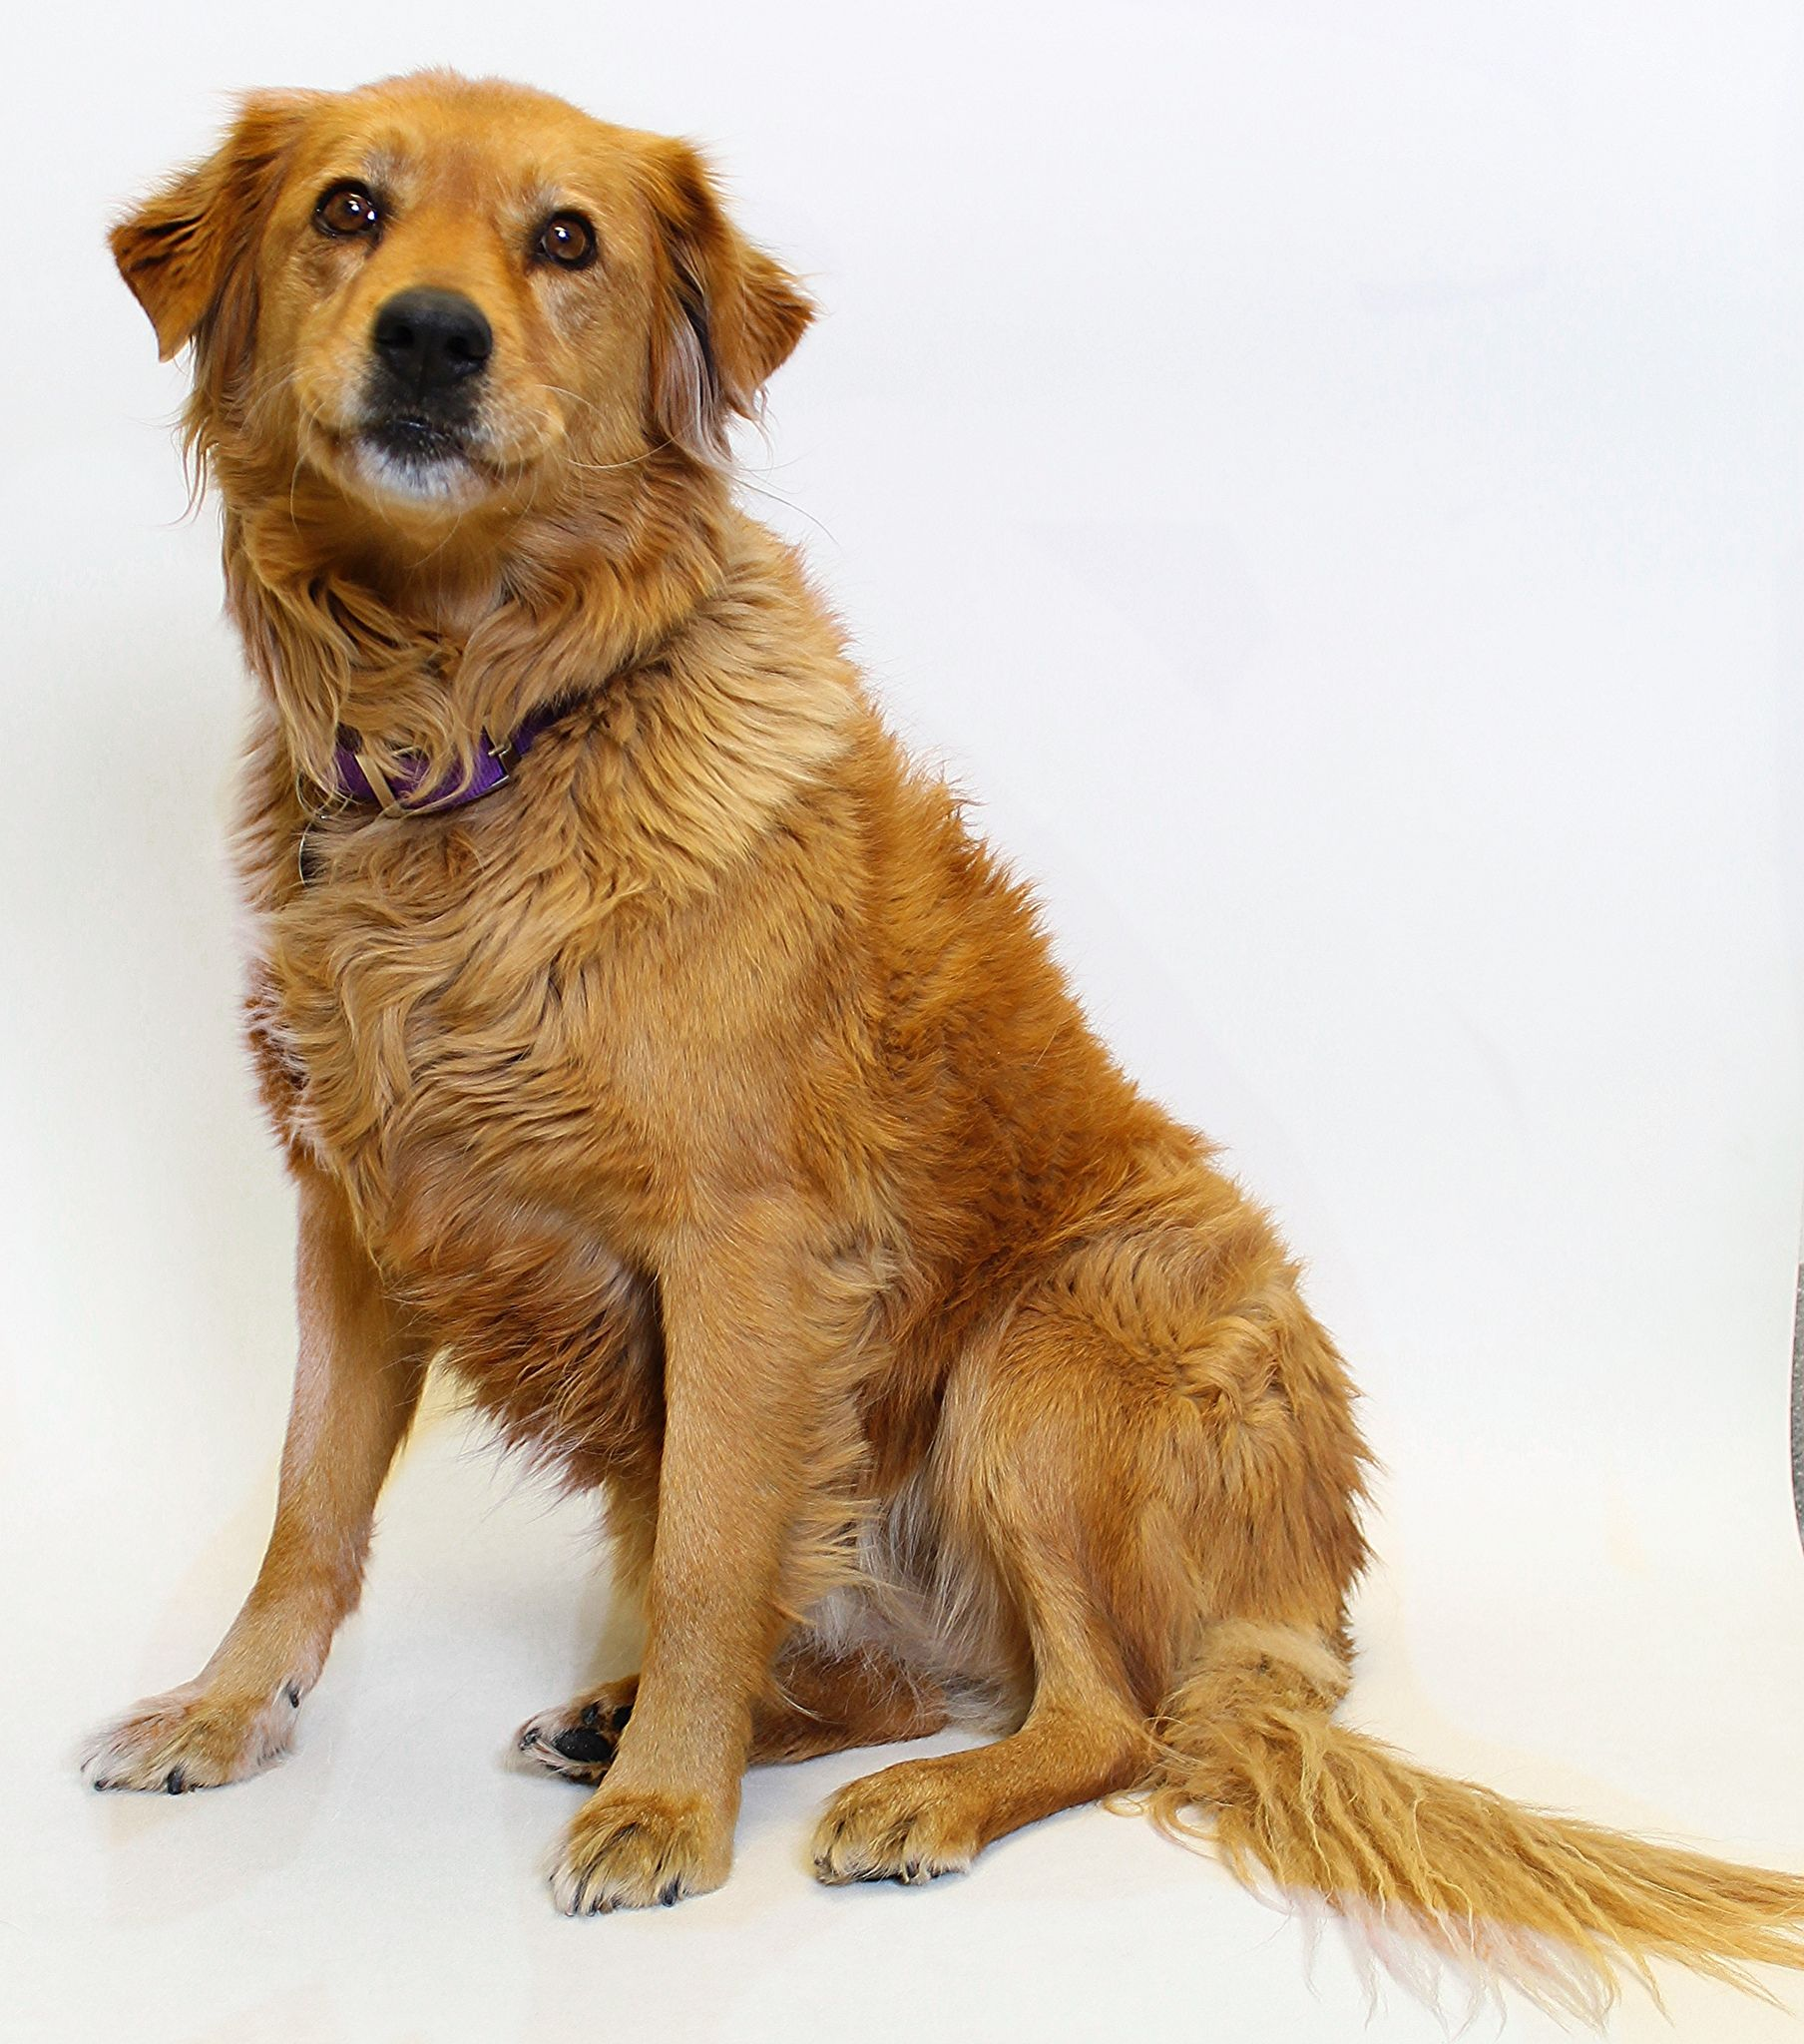 Golden Retriever Dog For Adoption In Truckee Ca Adn 441220 On